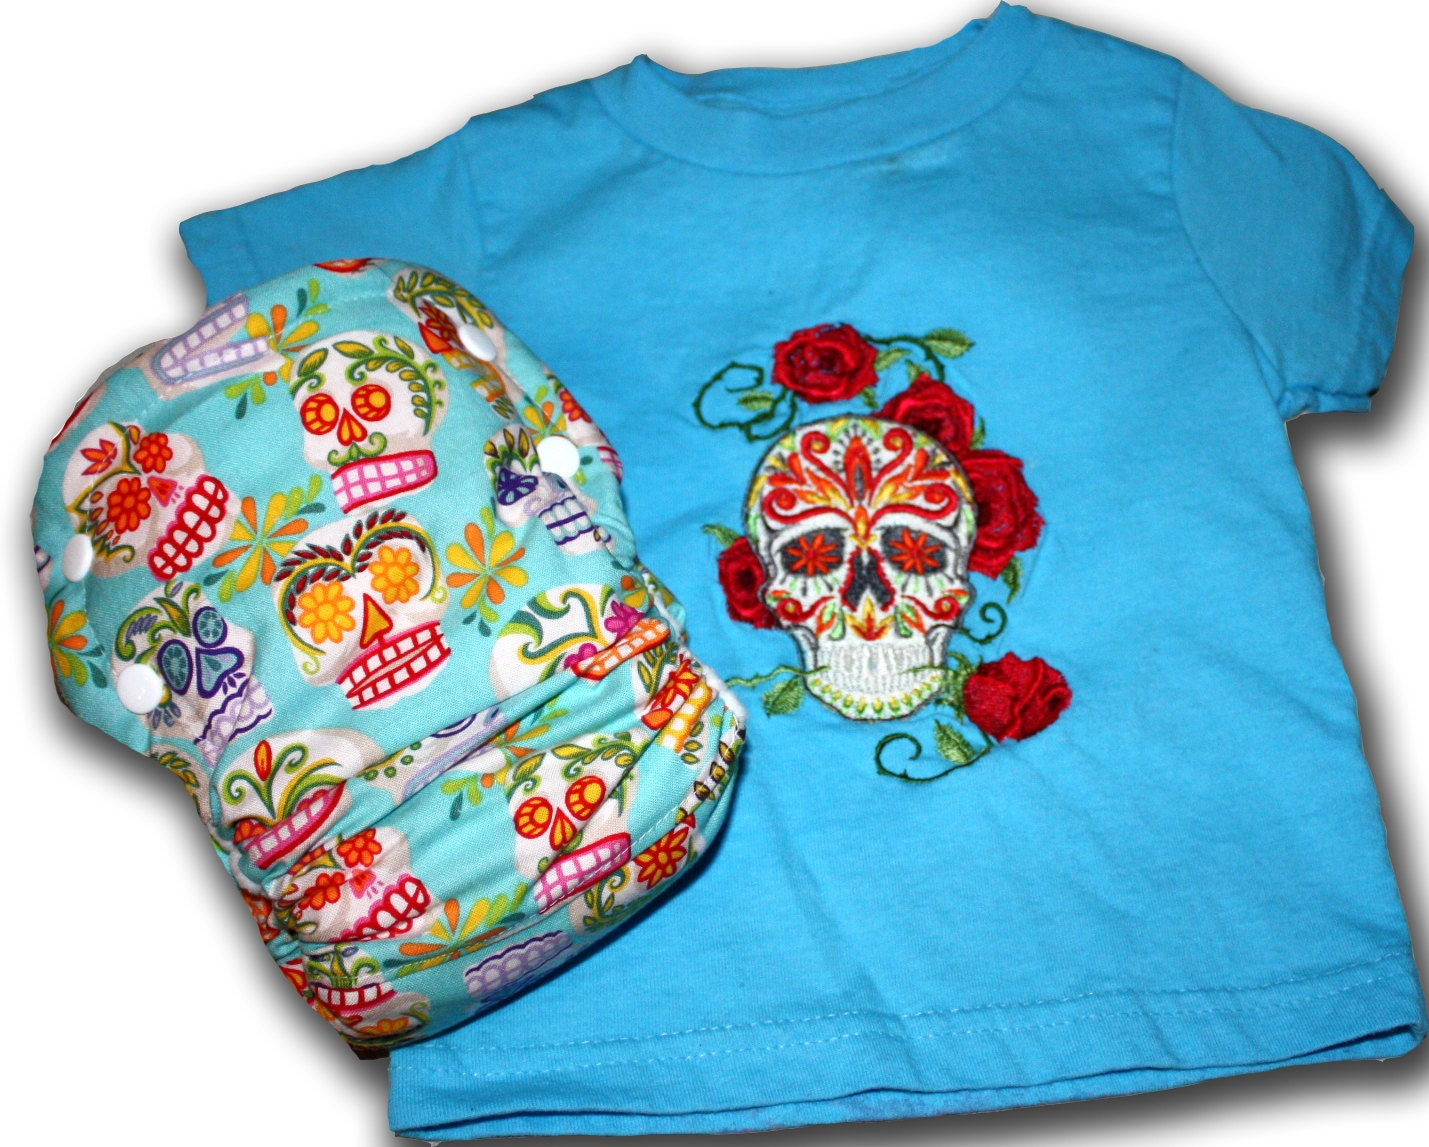 Calaveras/Sugar Skulls - Medium /Large 18m-24m AI2 Cloth Diaper and Embroidered Tee Set